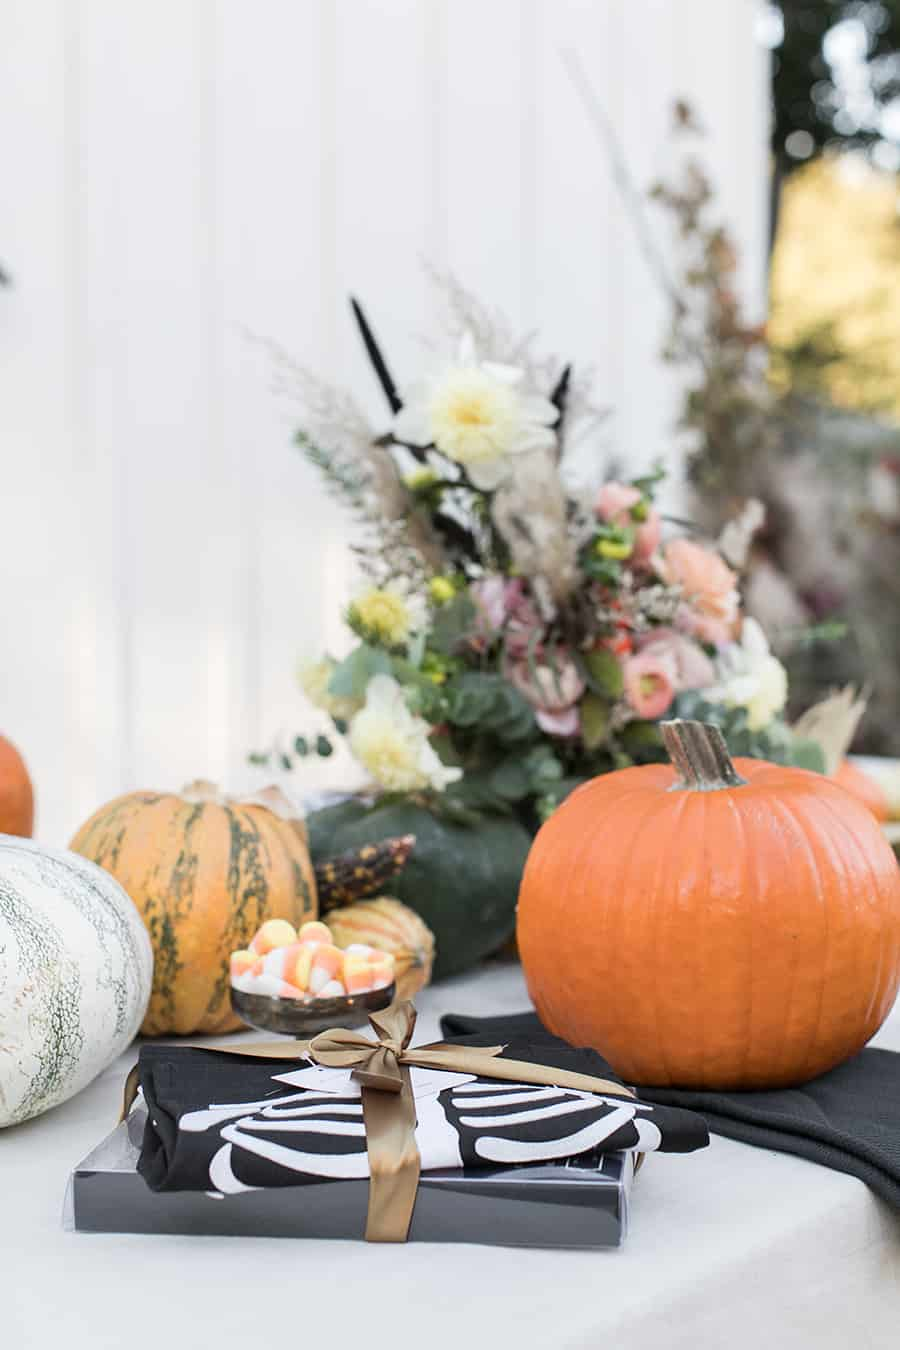 shot of pumpkins and pumpkins on a table